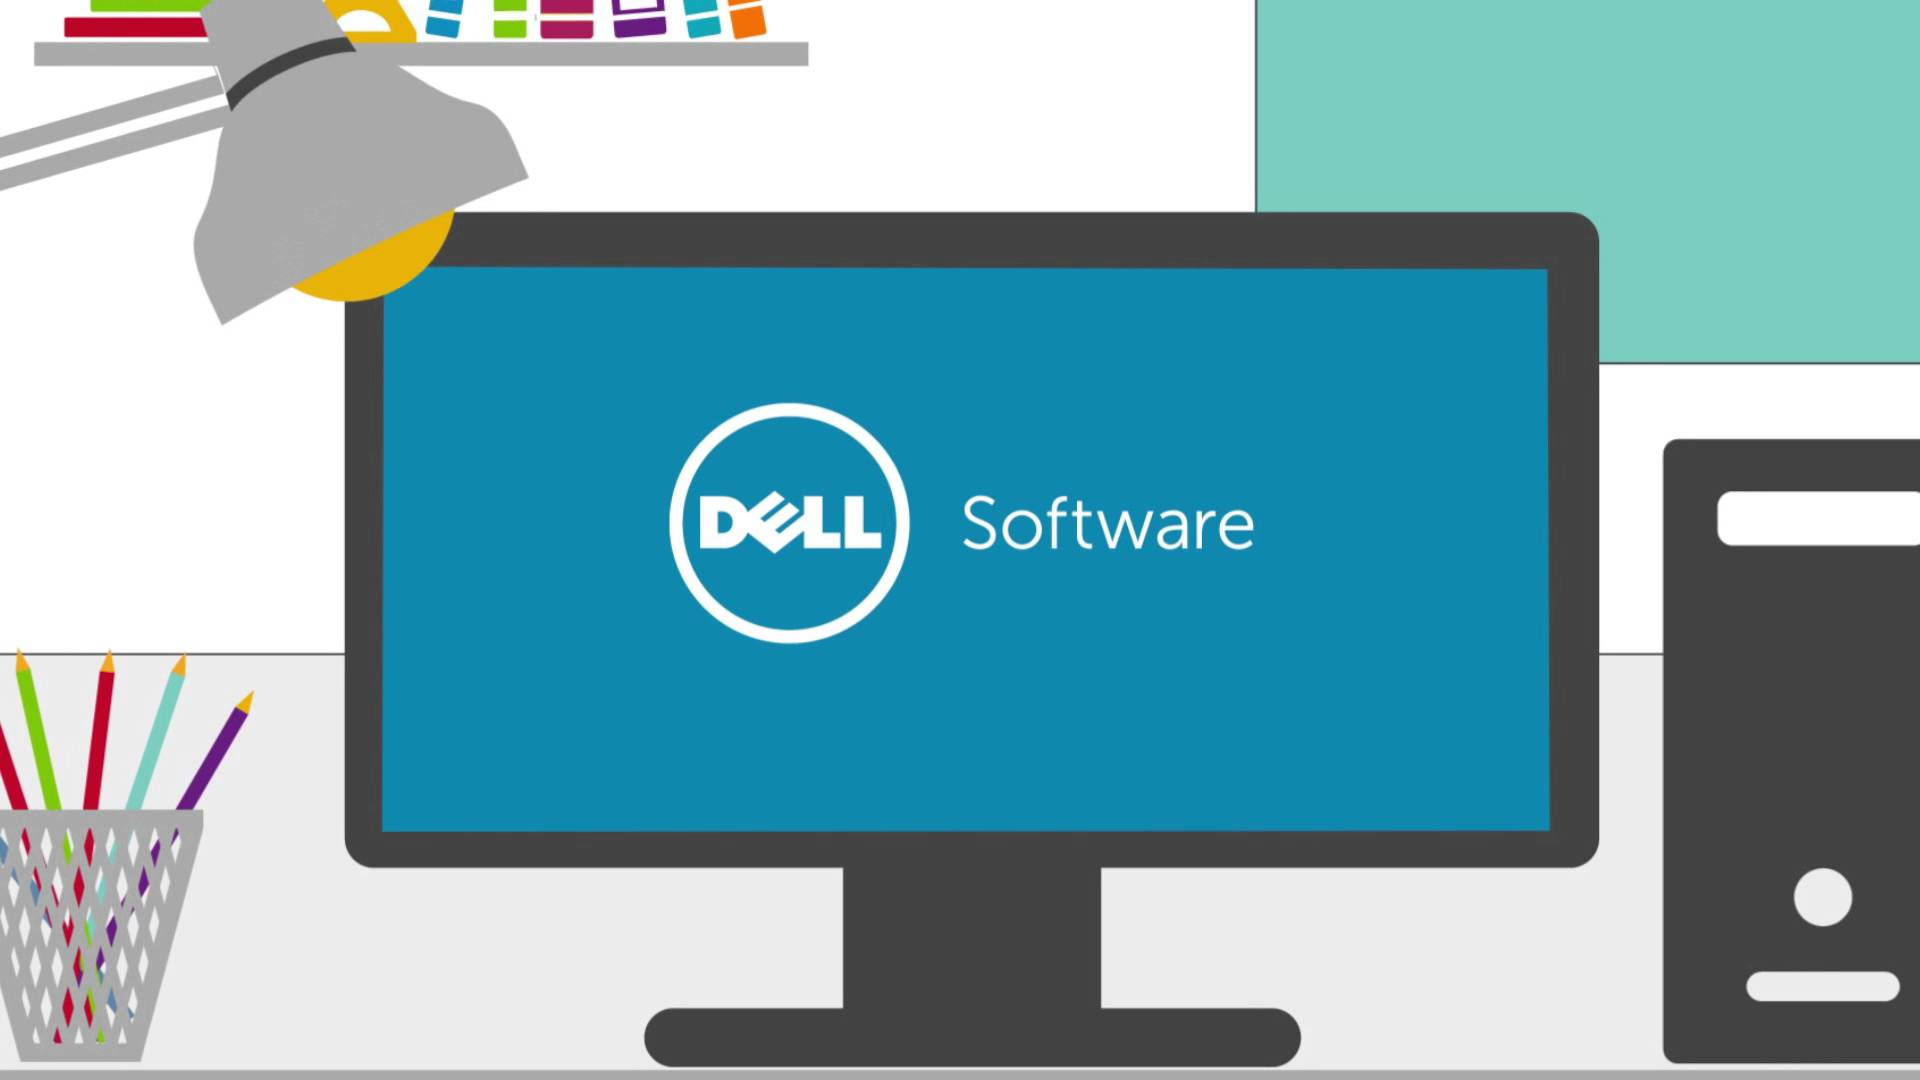 Dell is selling its software business for $2 billion